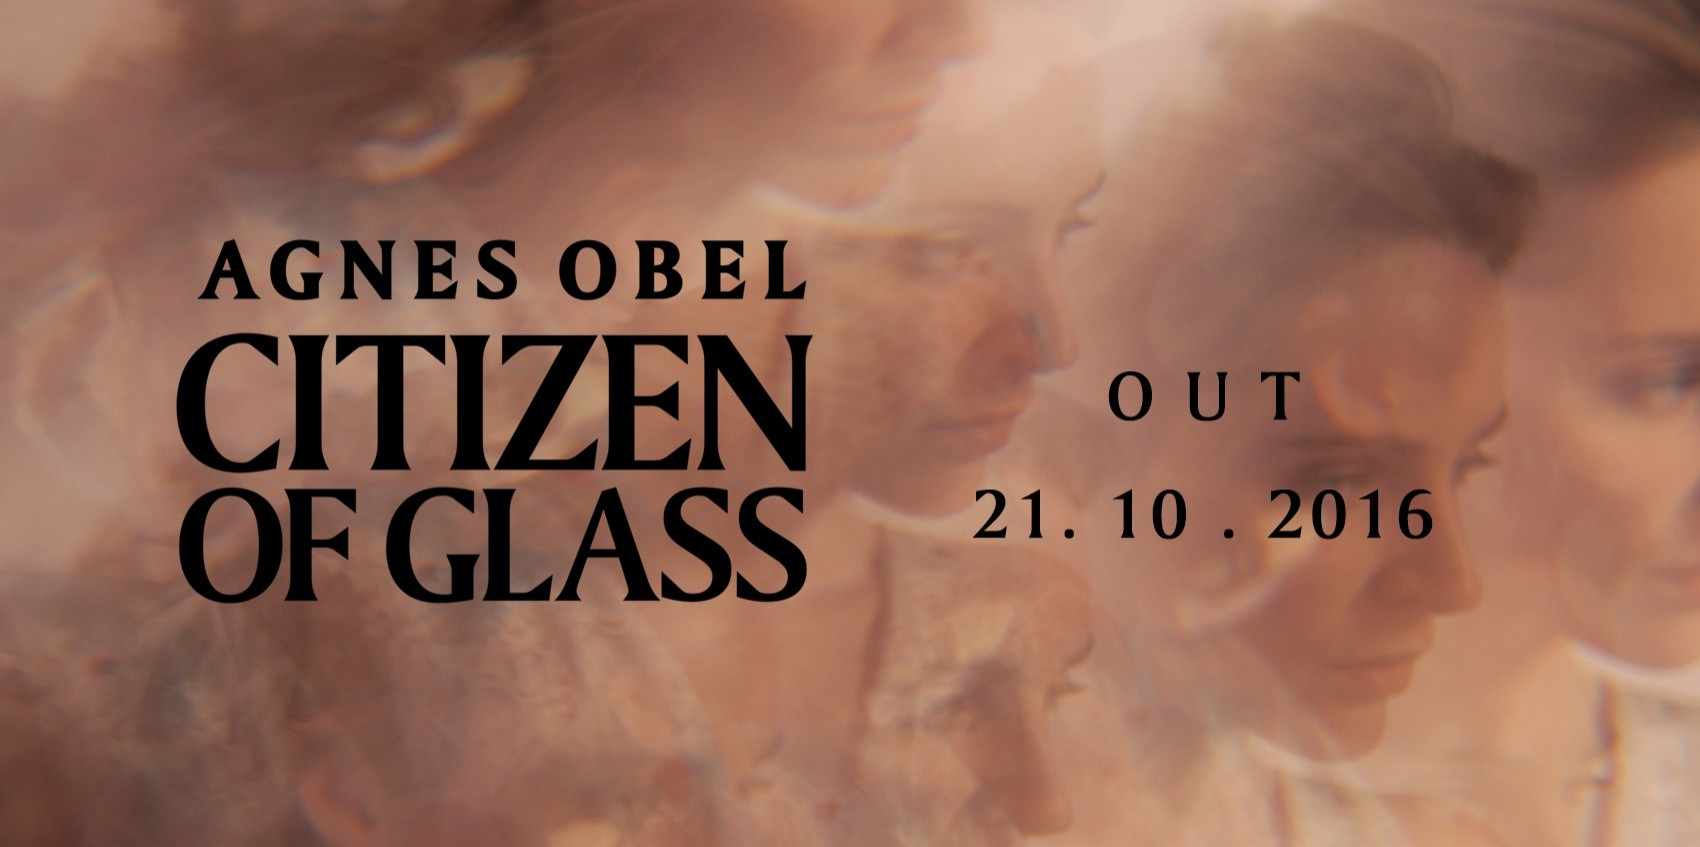 \'Citizen Of Glass\' by Agnes Obel is out 21st October 2016